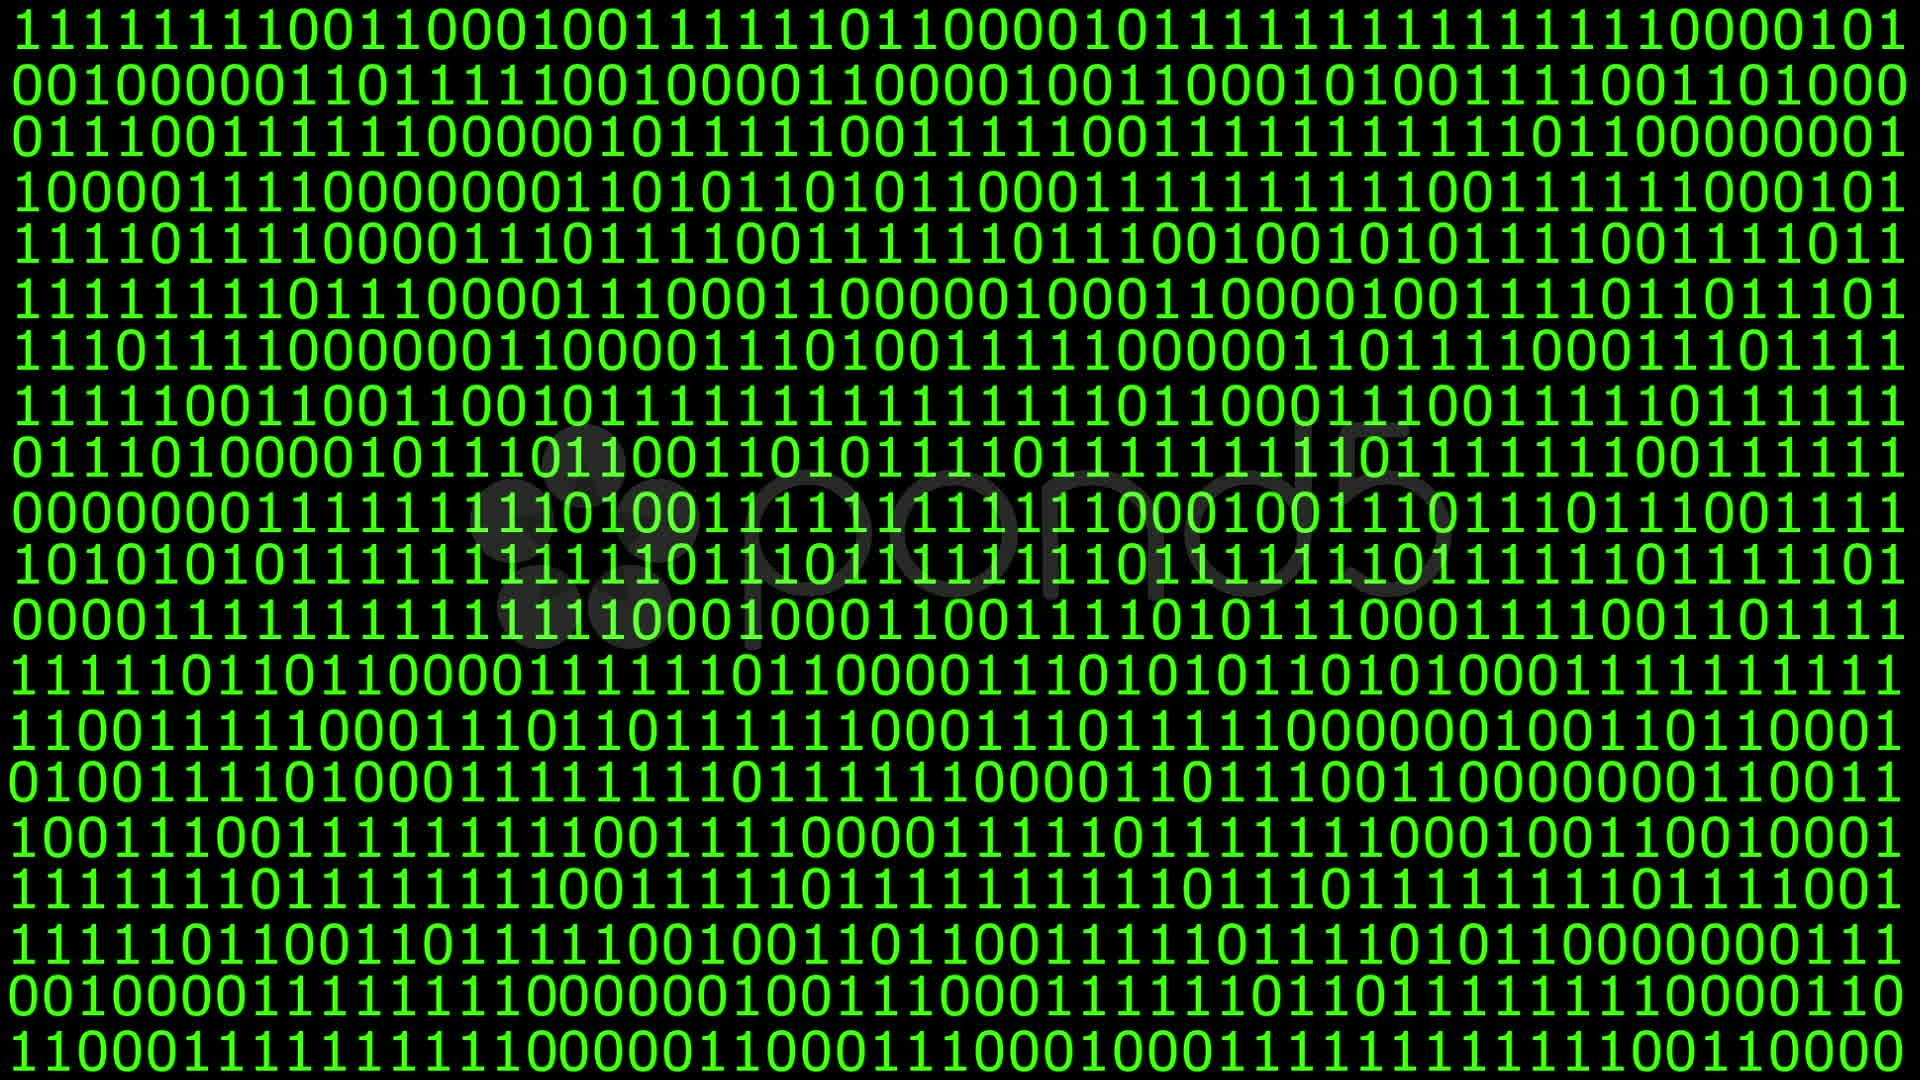 Hd Animation Of A Solid Wall Of Binary Code Stock Footage Solid Wall Hd Animation Binary Code Wall Hd Coding